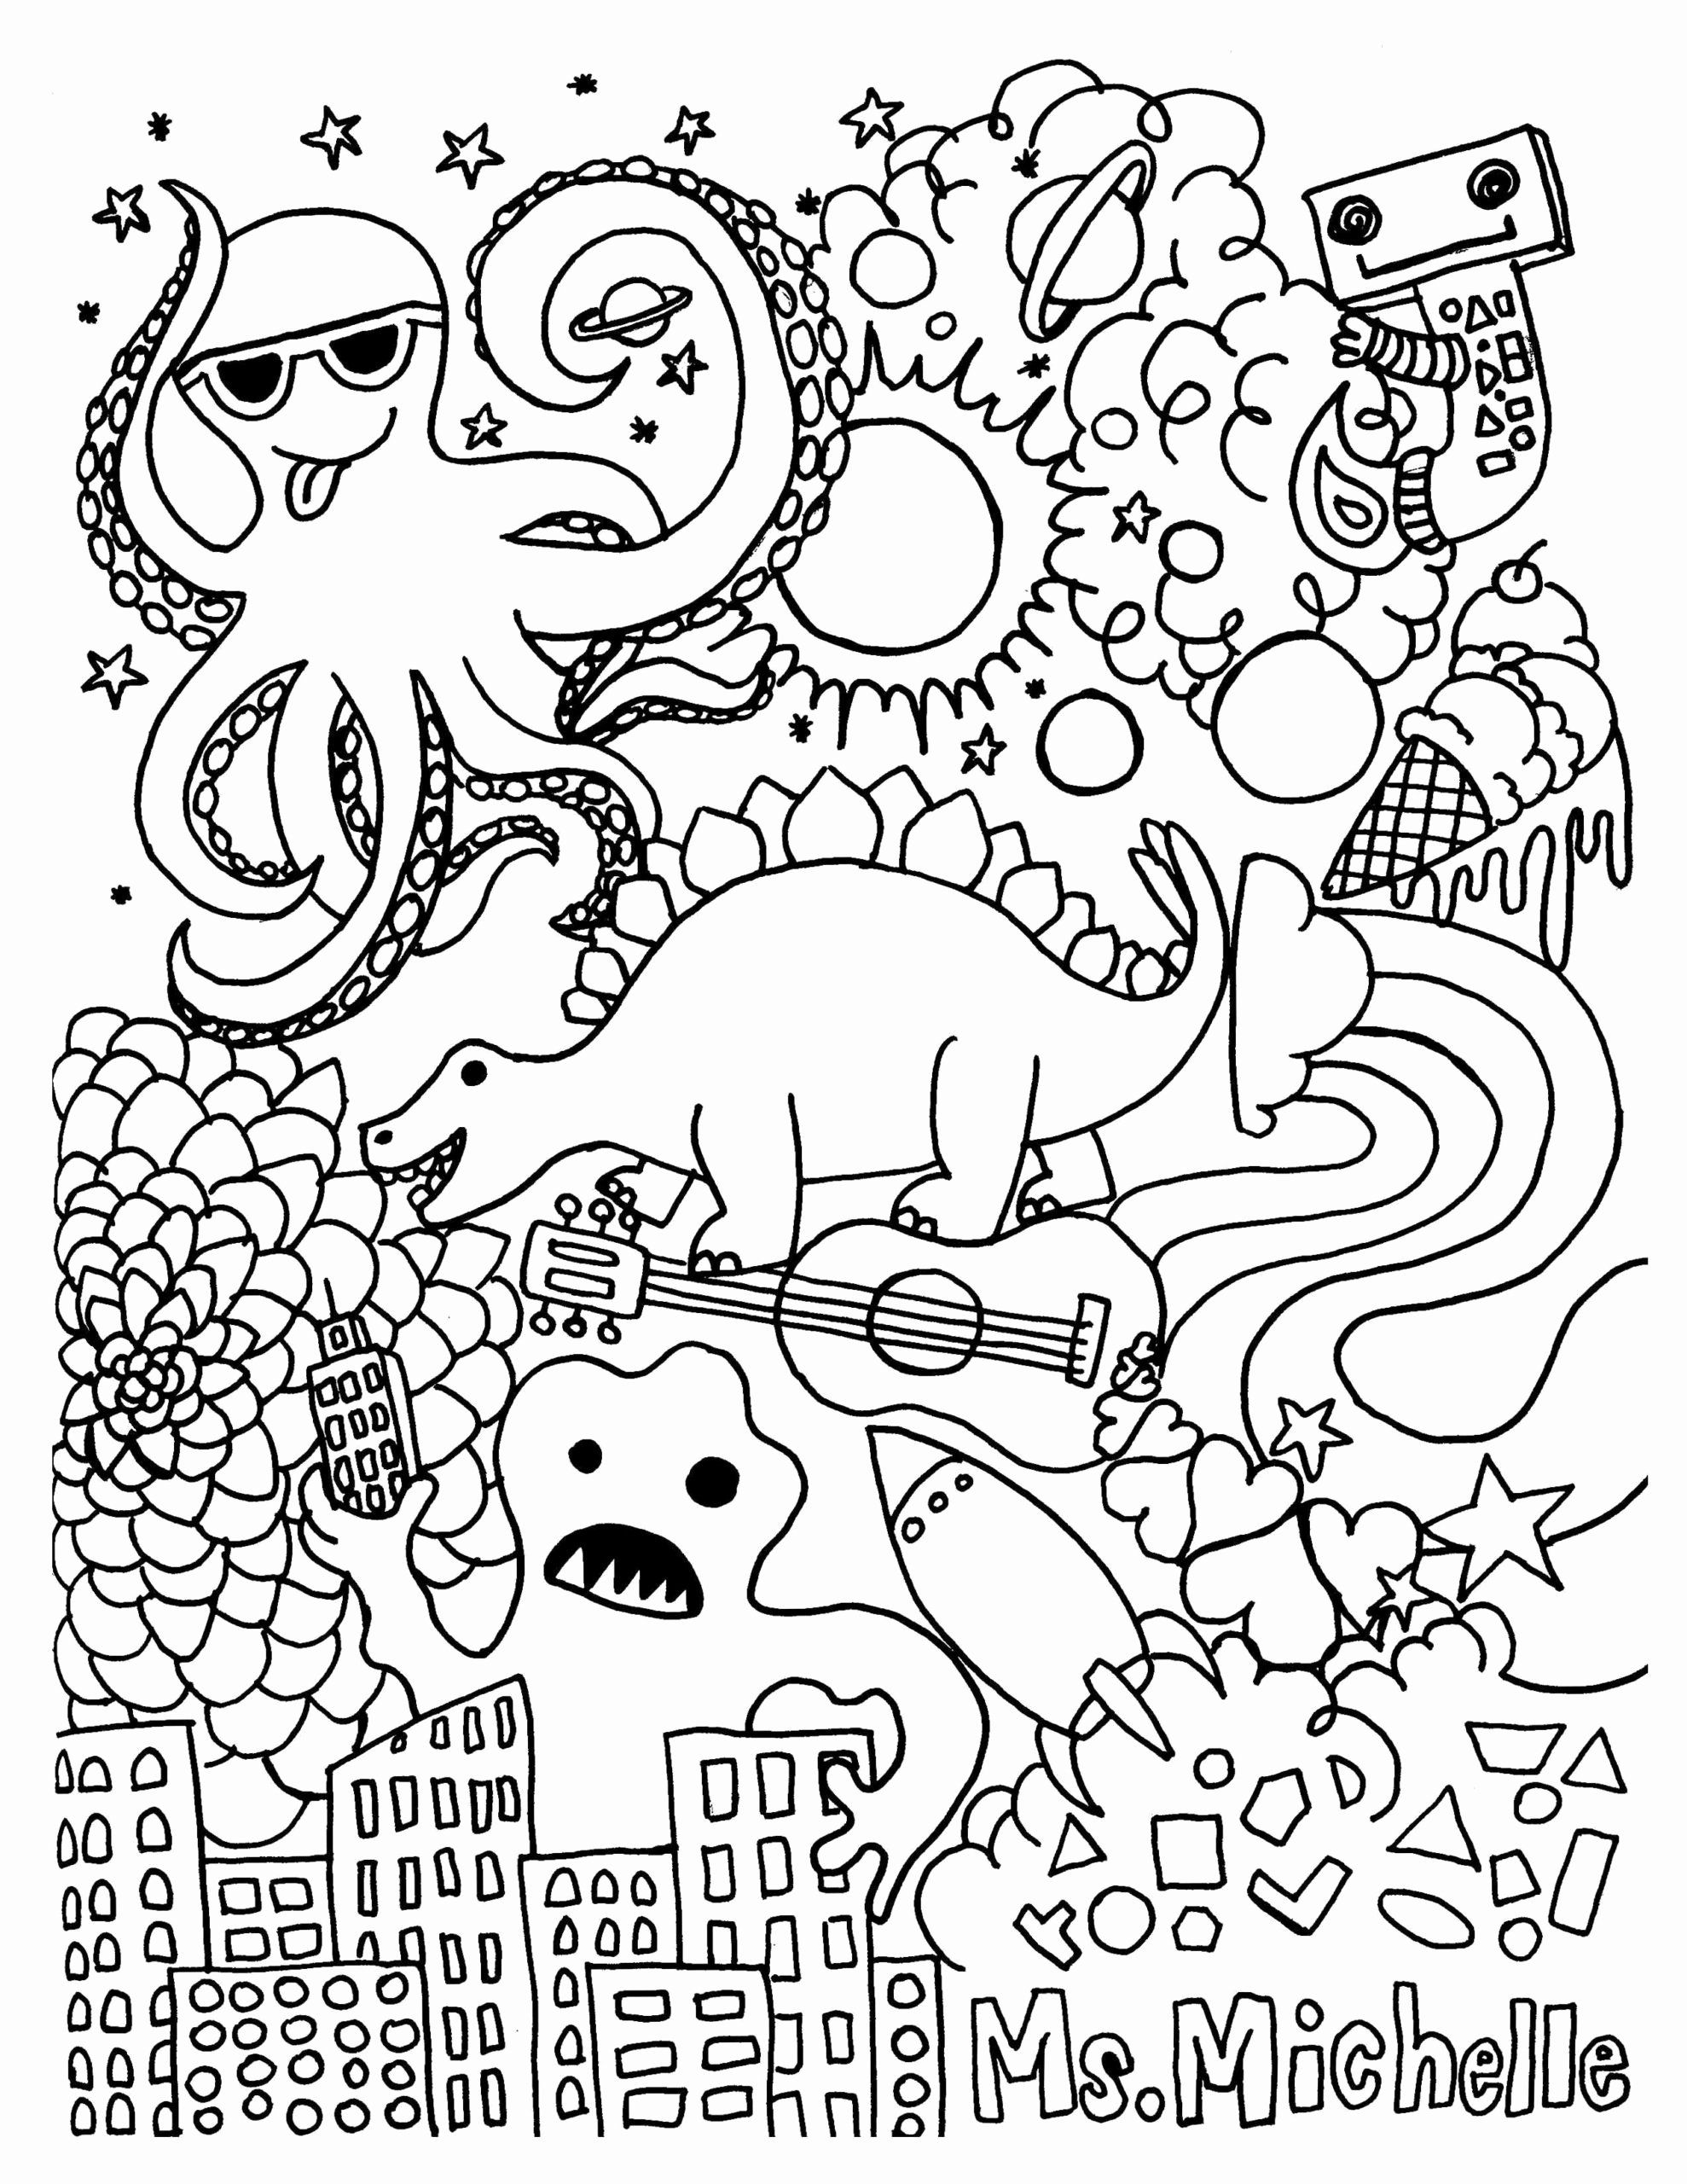 Middle School Coloring Pages : middle, school, coloring, pages, Coloring, Pages, Winter, Scenes, Unique, Theittle, Mermai…, Inspirational,, Mandala, Pages,, Disney